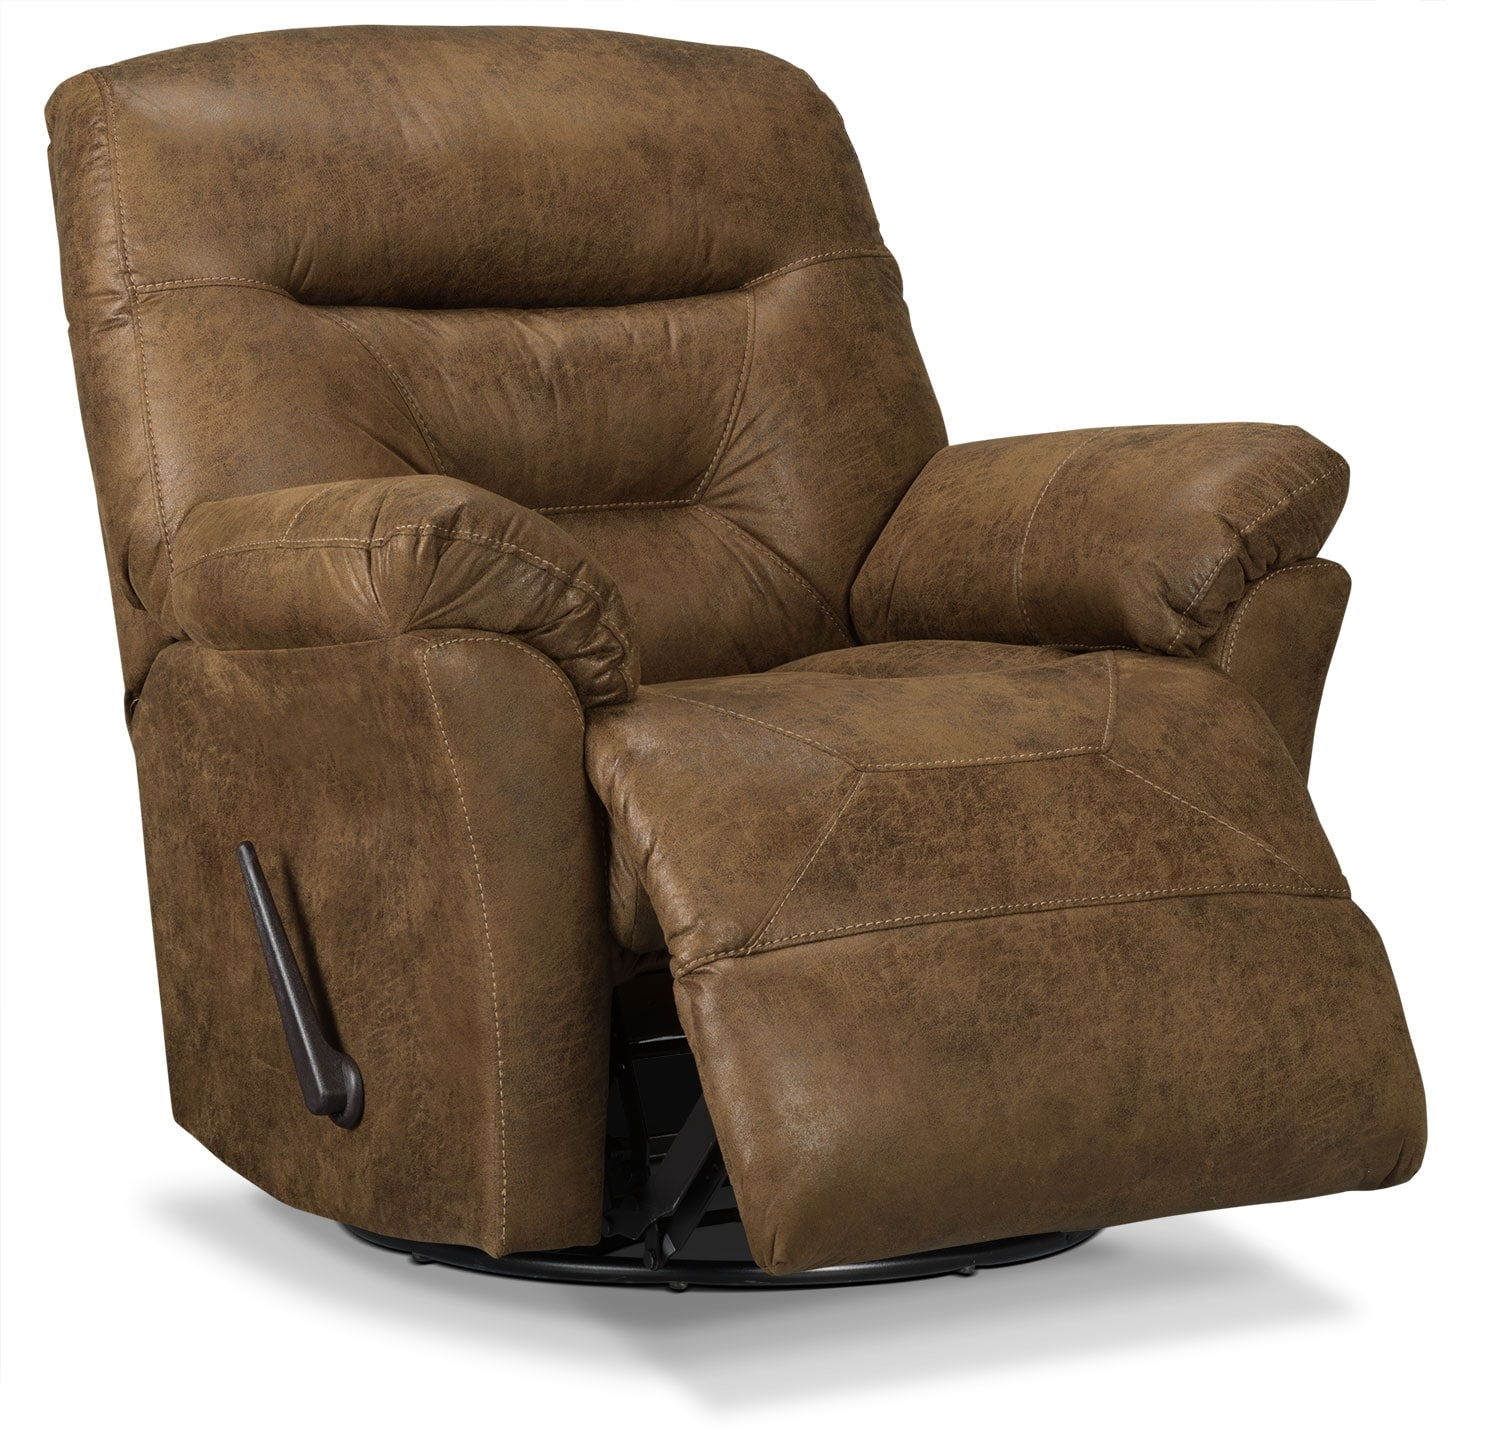 Designed2B Recliner 4579 Leather-Look Fabric Swivel Glider ...